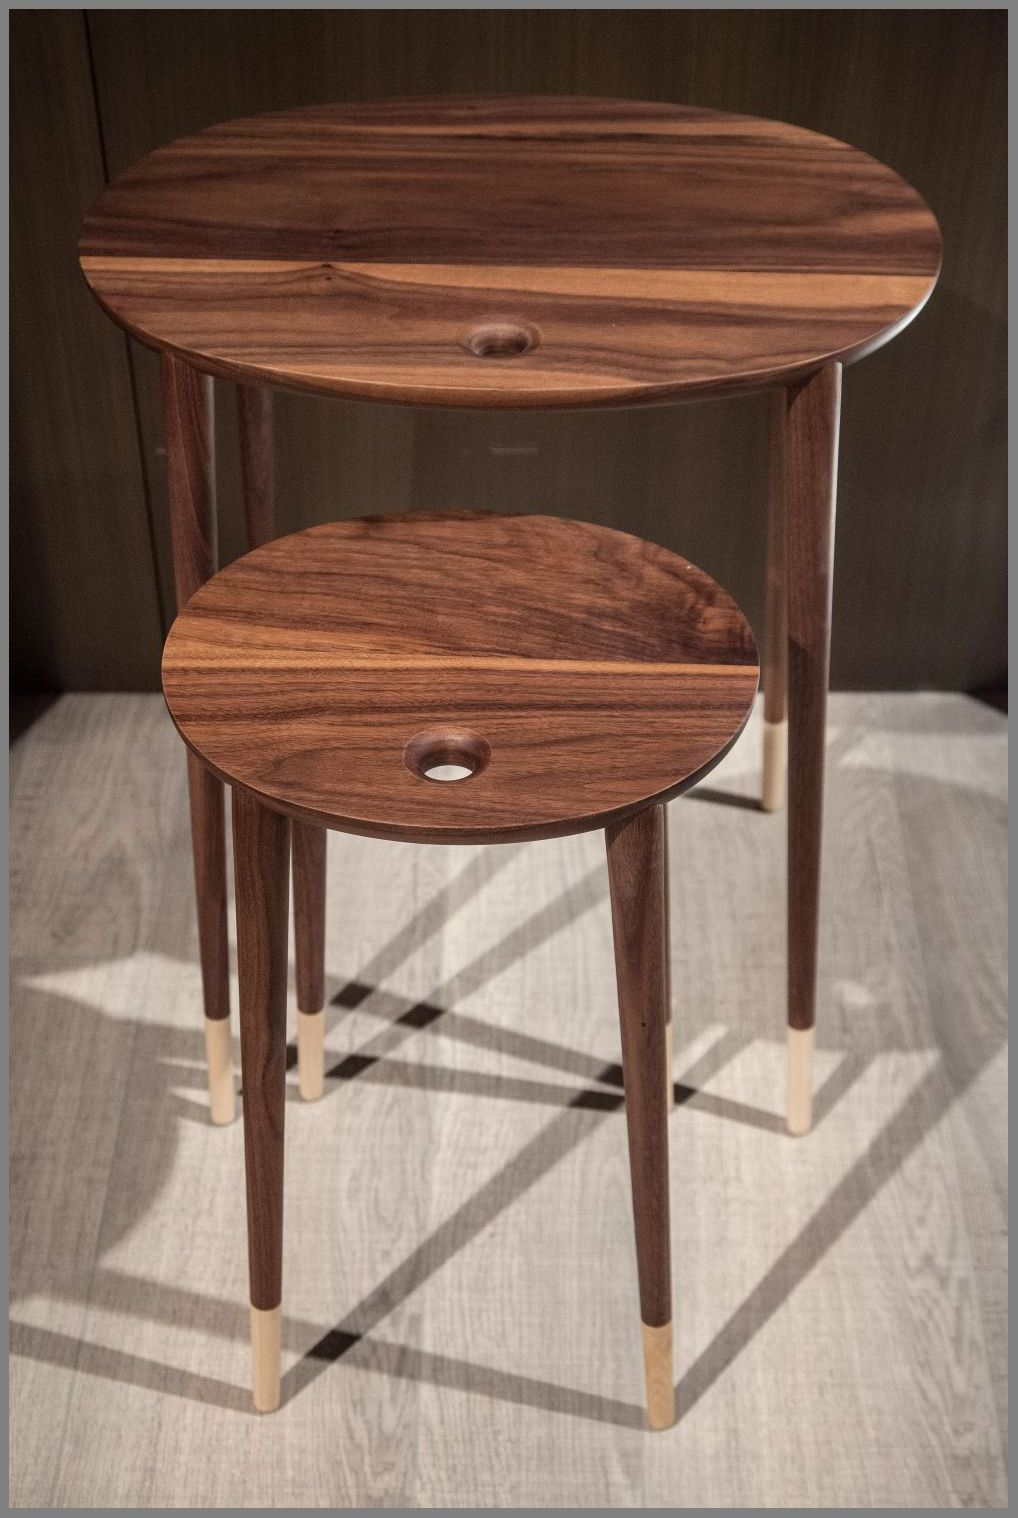 beautifull narrow accent tables seattle outdoor art wood amazing small side table designs perfection the little things short very half circle hall farmhouse dining pier one living